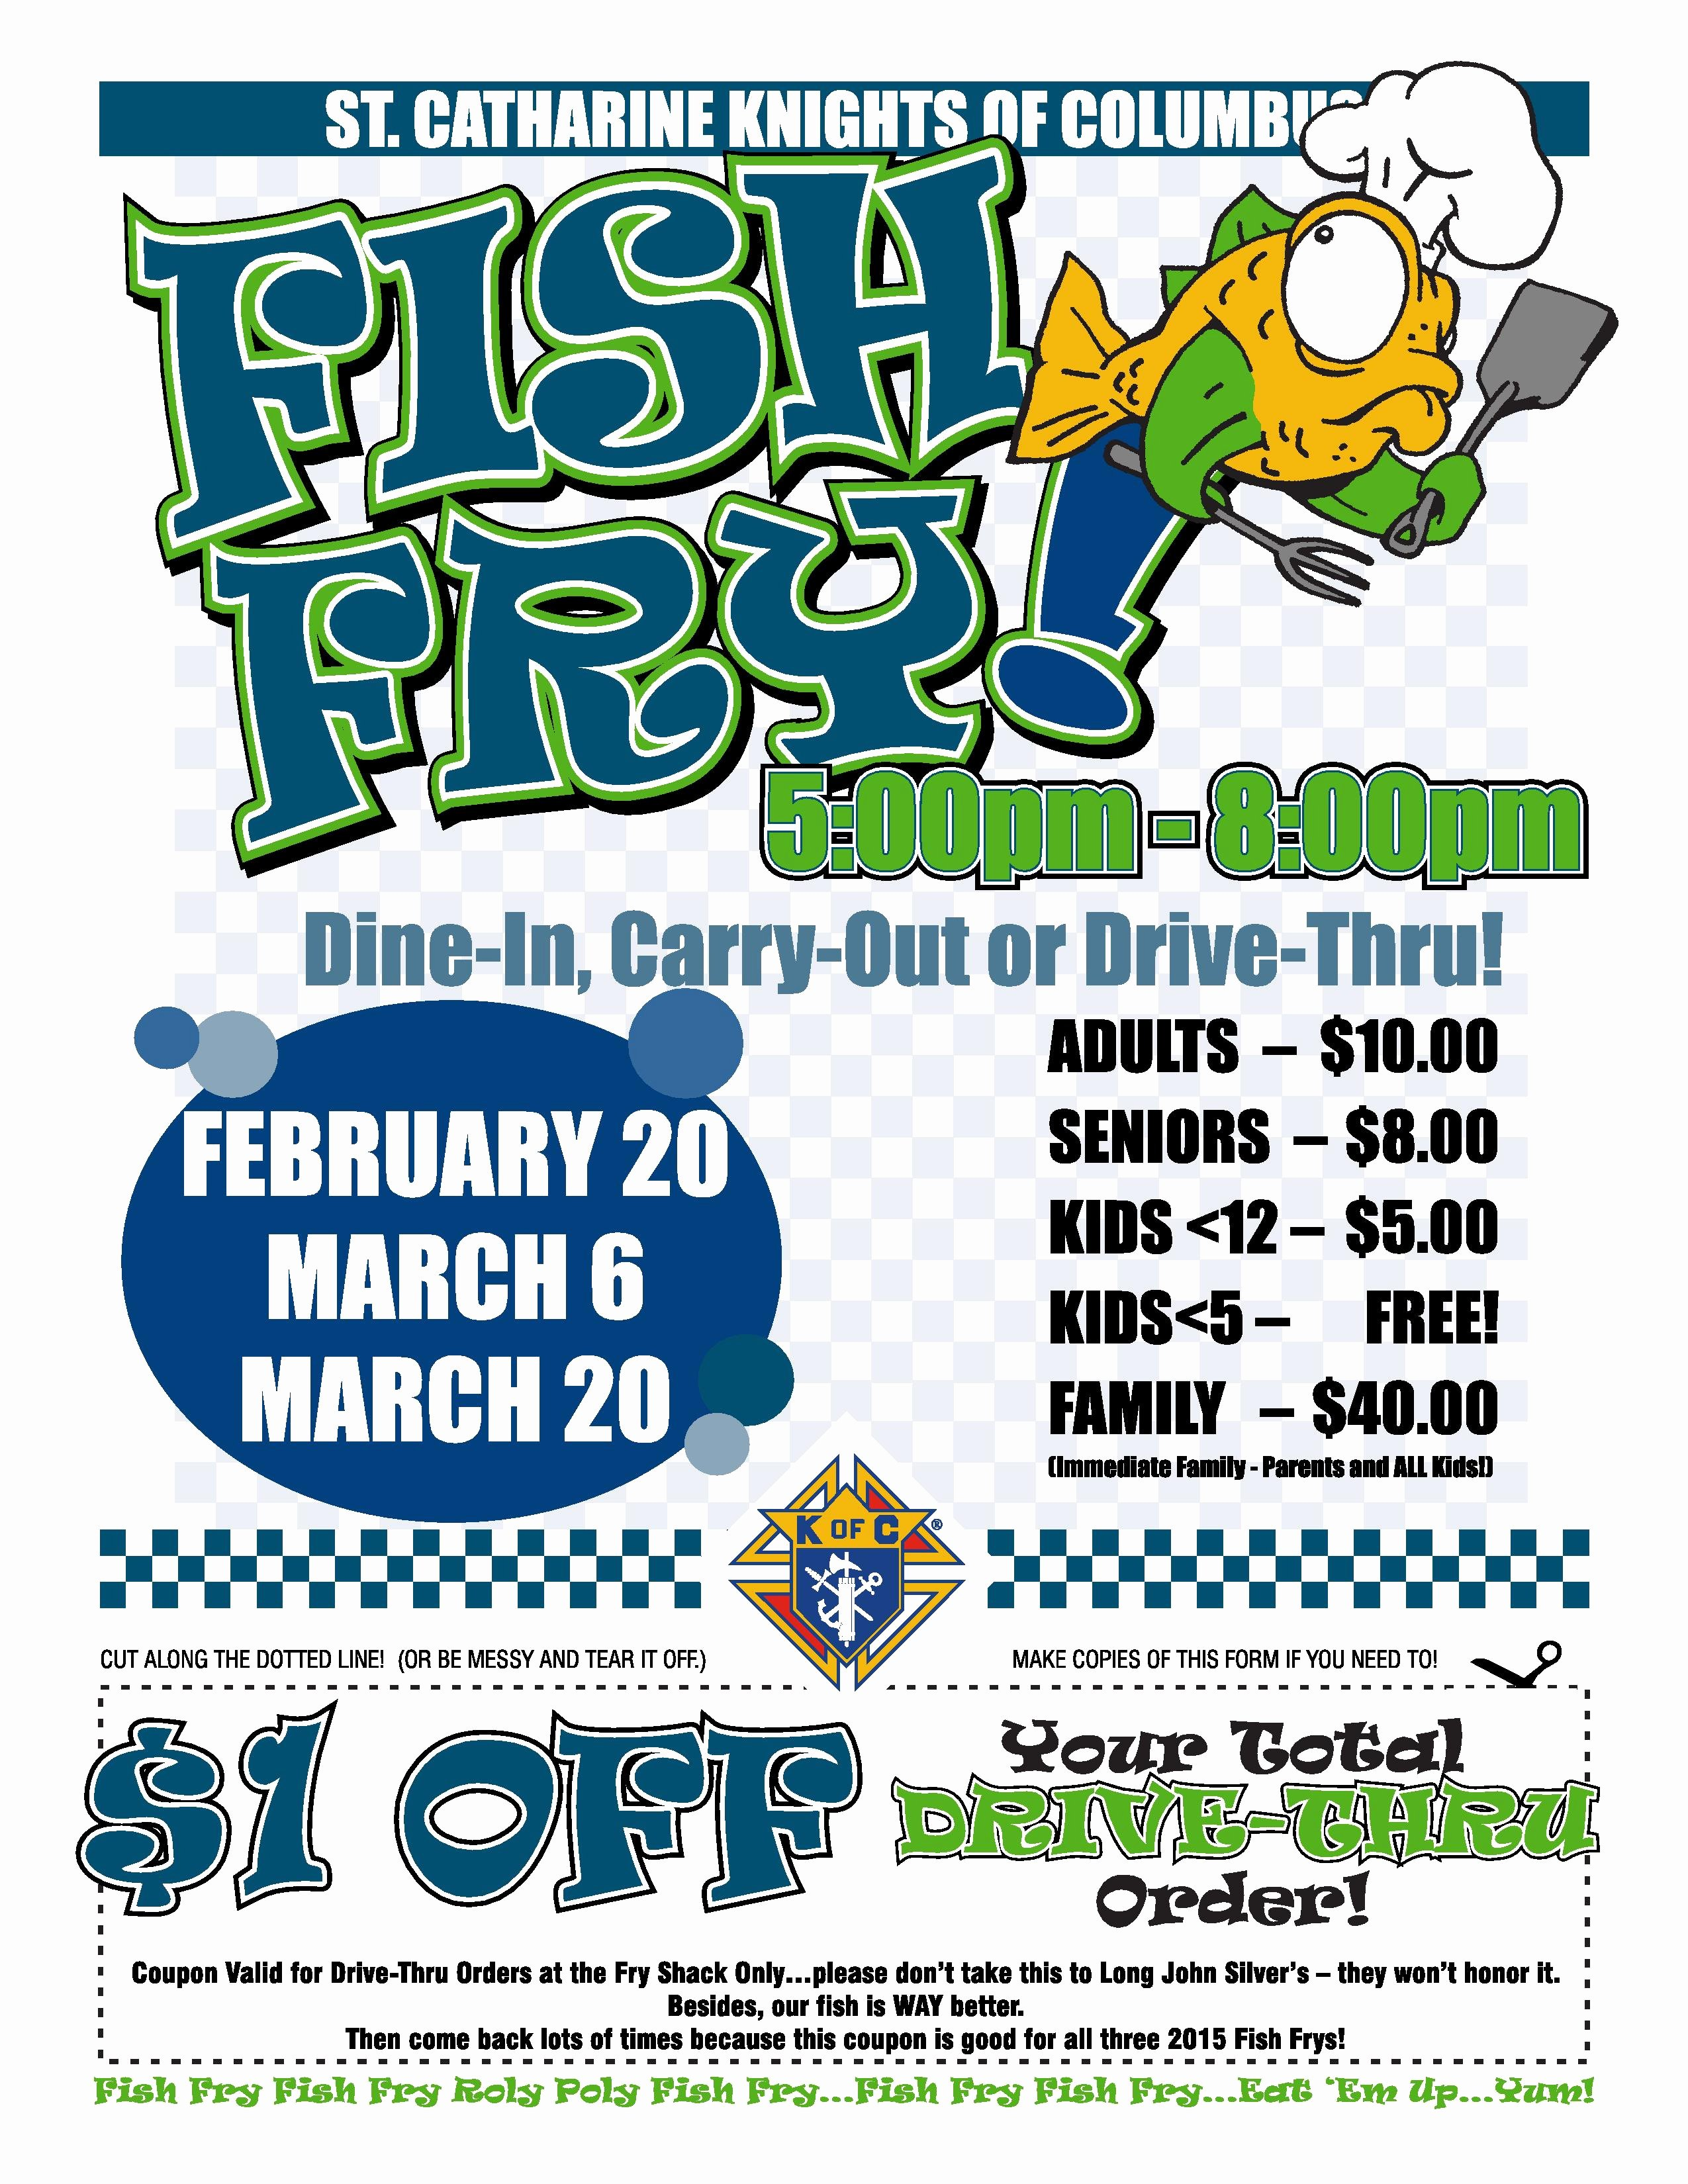 Fish Fry Flyer Template New Best 36 Fish Fry Powerpoint Backgrounds On Hipwallpaper